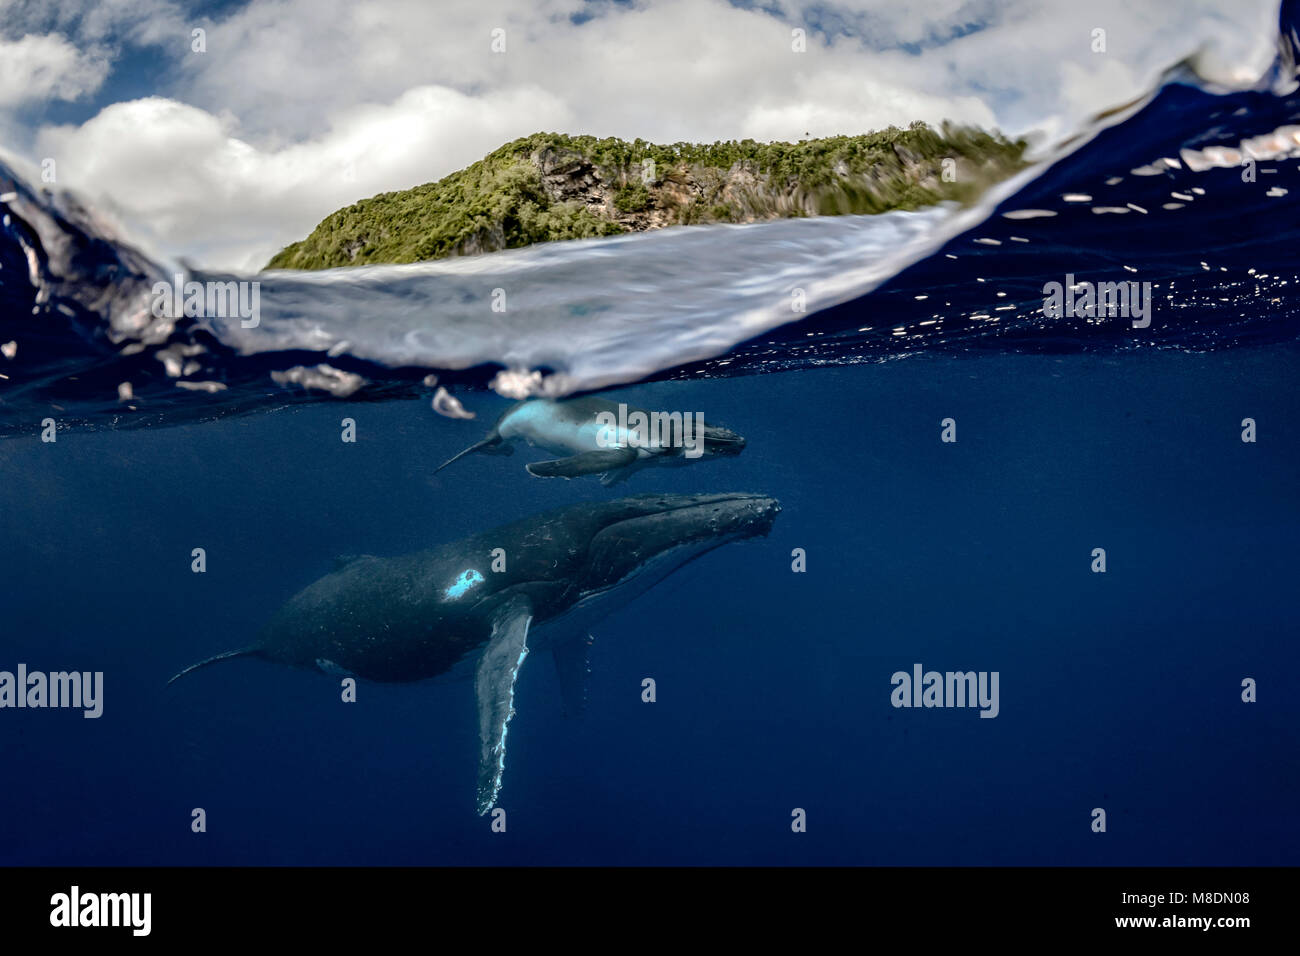 Humpback whale (Megaptera novaeangliae) and calf in the waters of Tonga - Stock Image